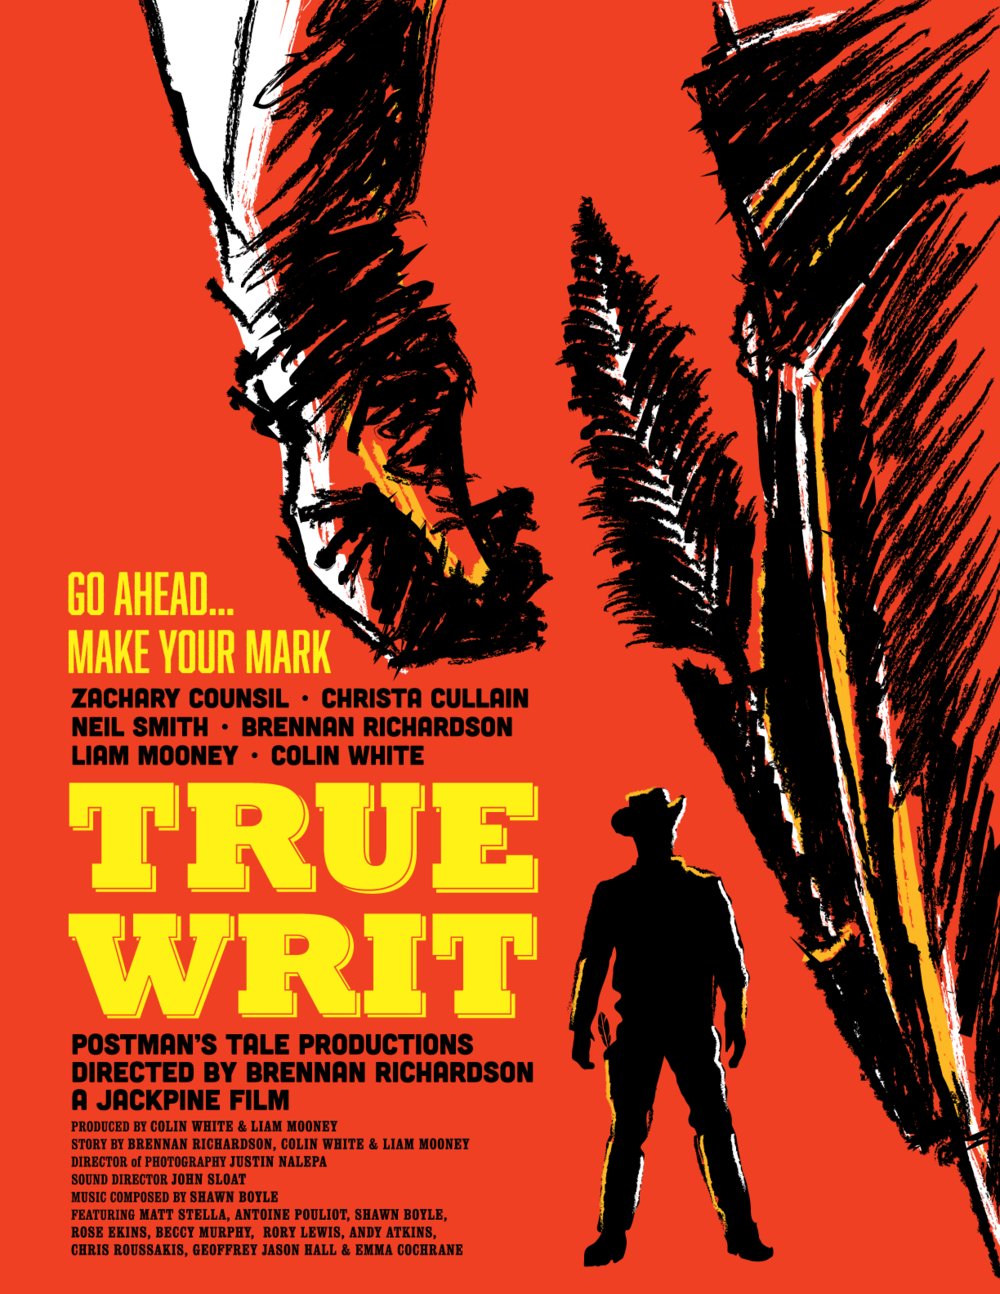 True_Writ_Poster_Final.png